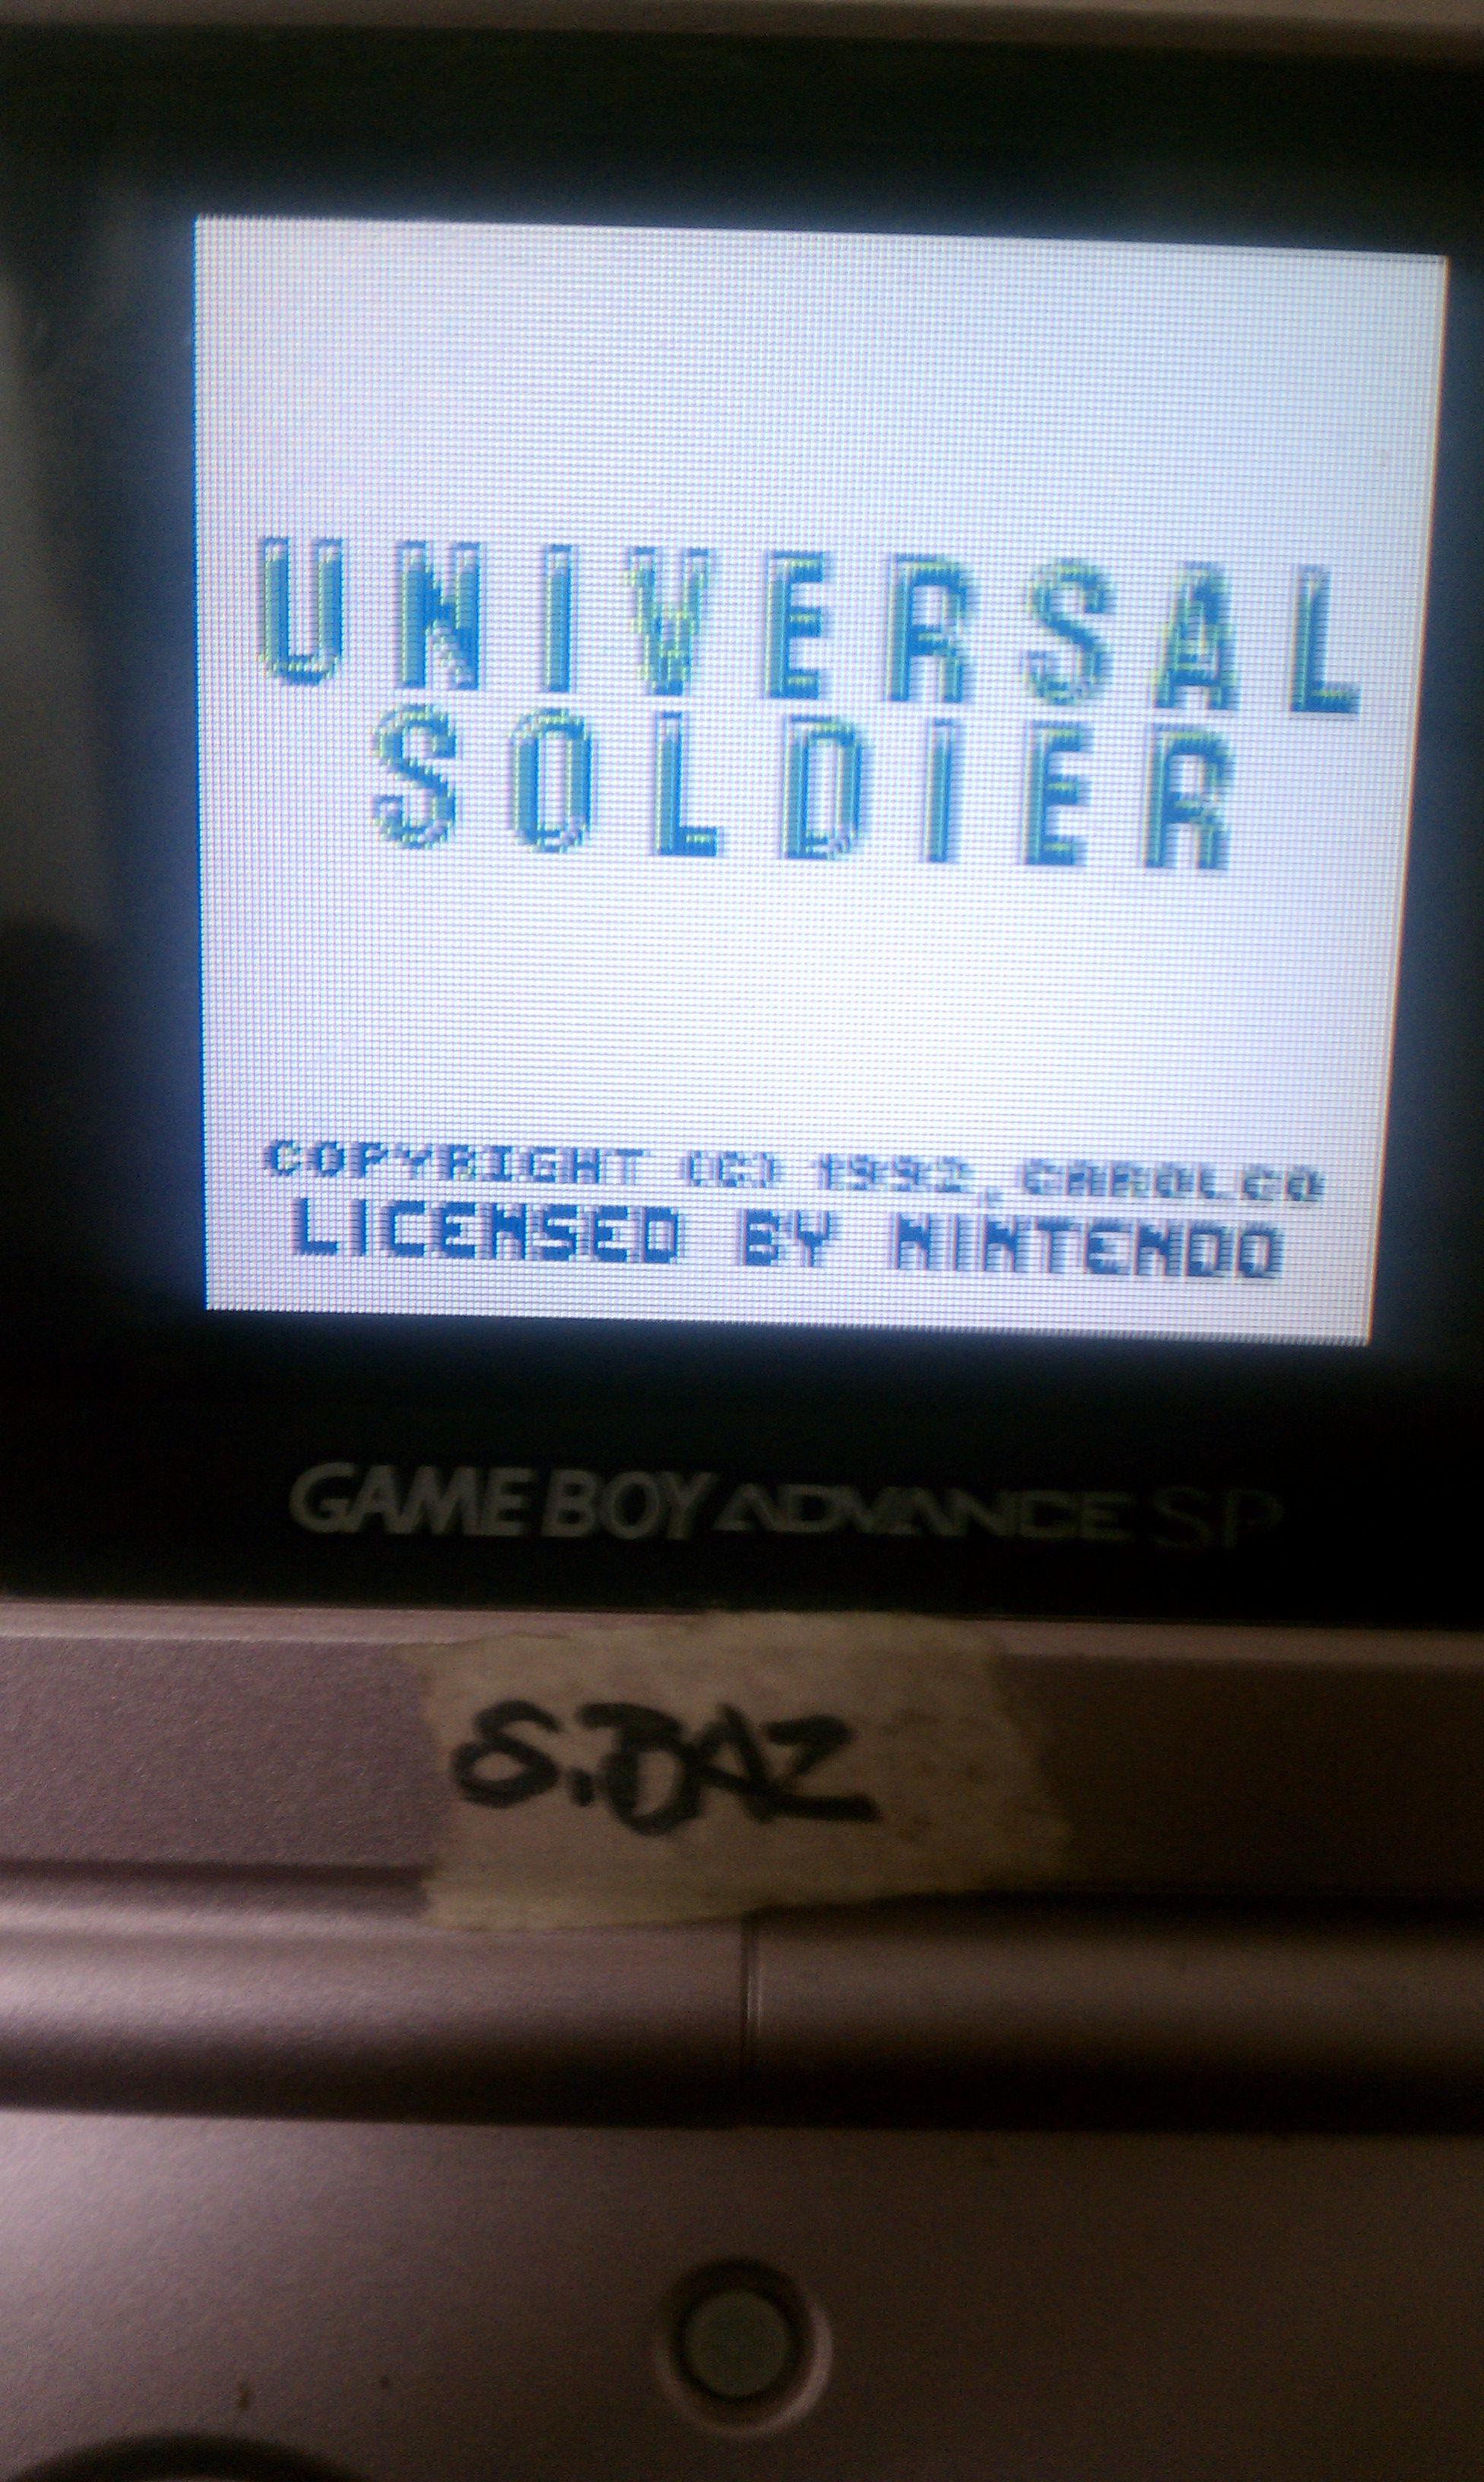 S.BAZ: Universal Soldier [Easy: 5 Lives] (Game Boy) 58,400 points on 2020-03-18 23:41:51